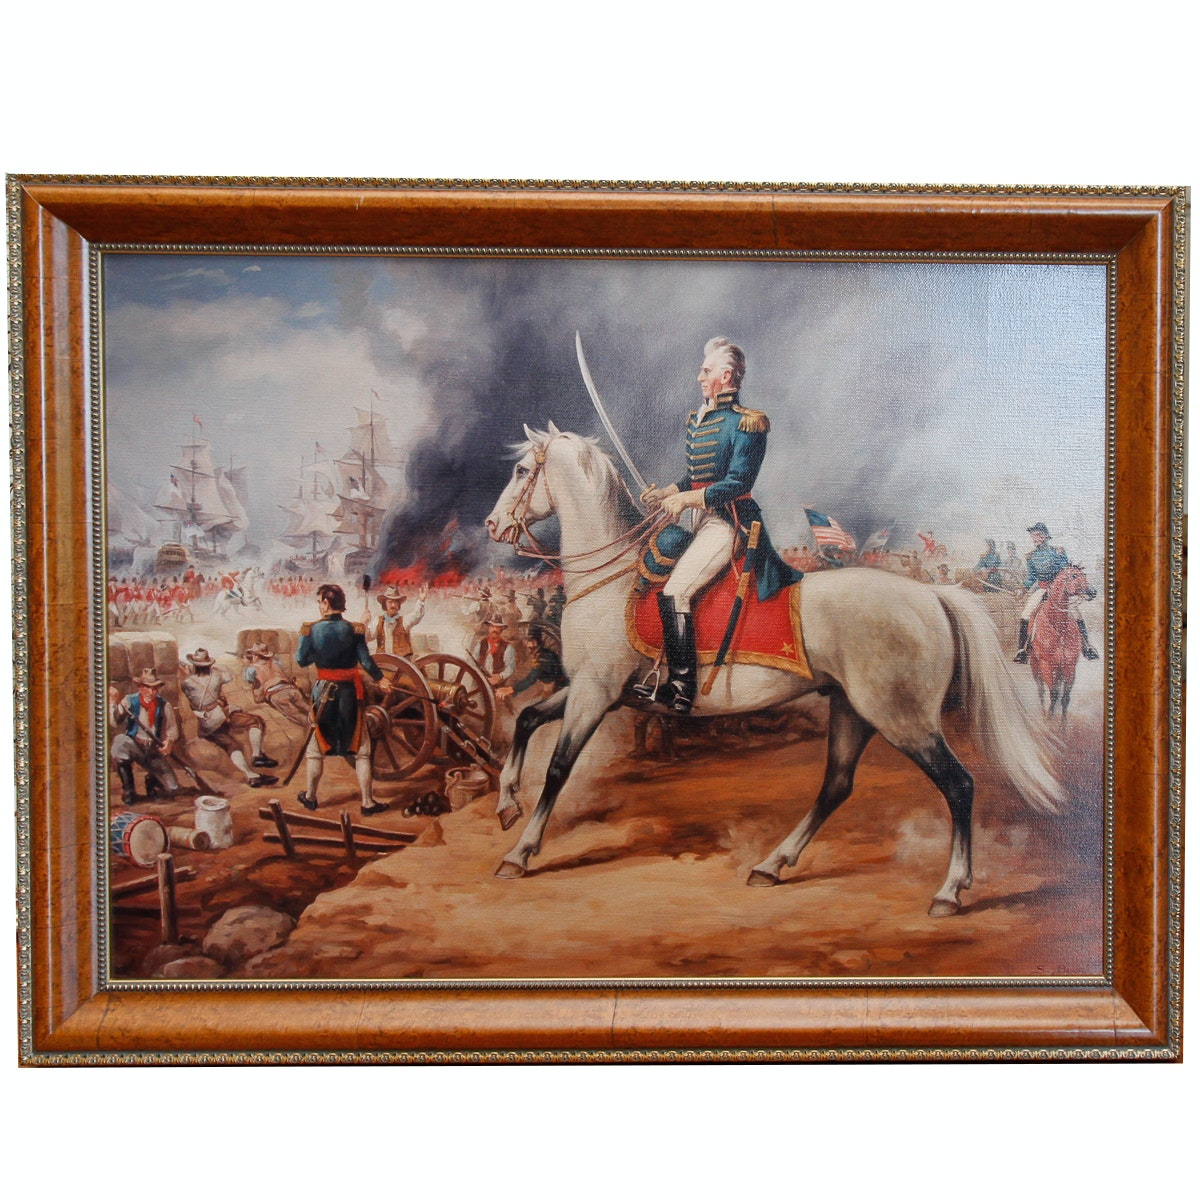 Reproduction Print on Canvas After Sandor Bodo of a Battle Scene